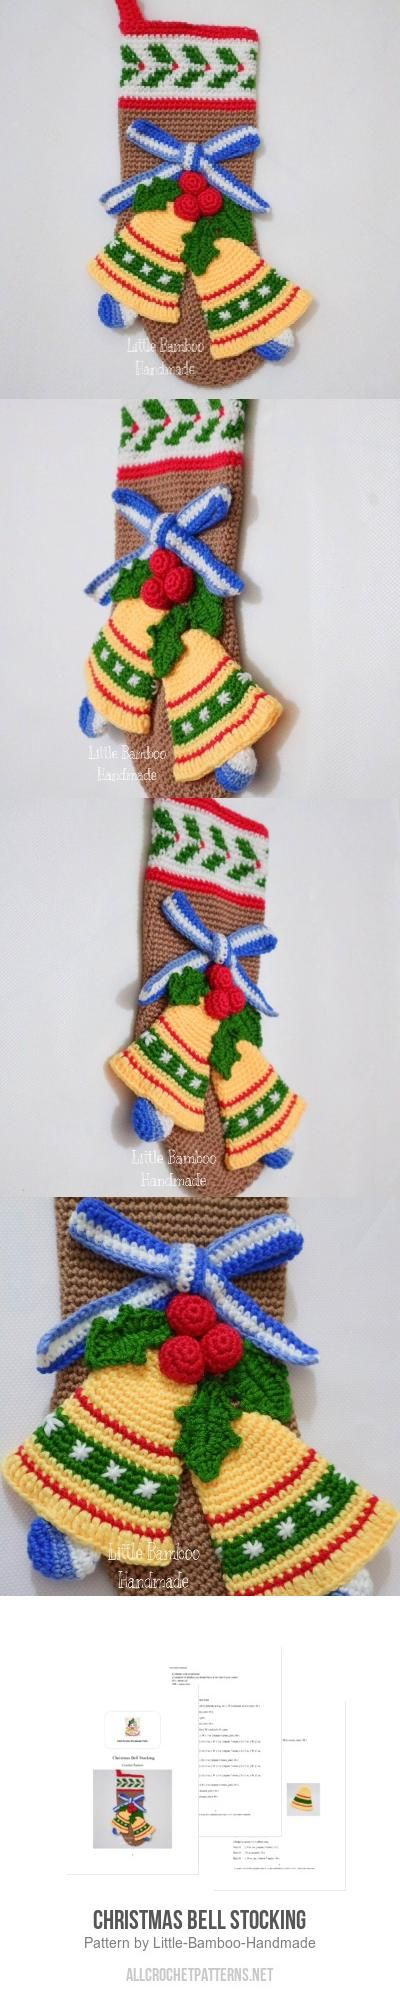 817 best weihnachtsfiguren stricken images on Pinterest ...